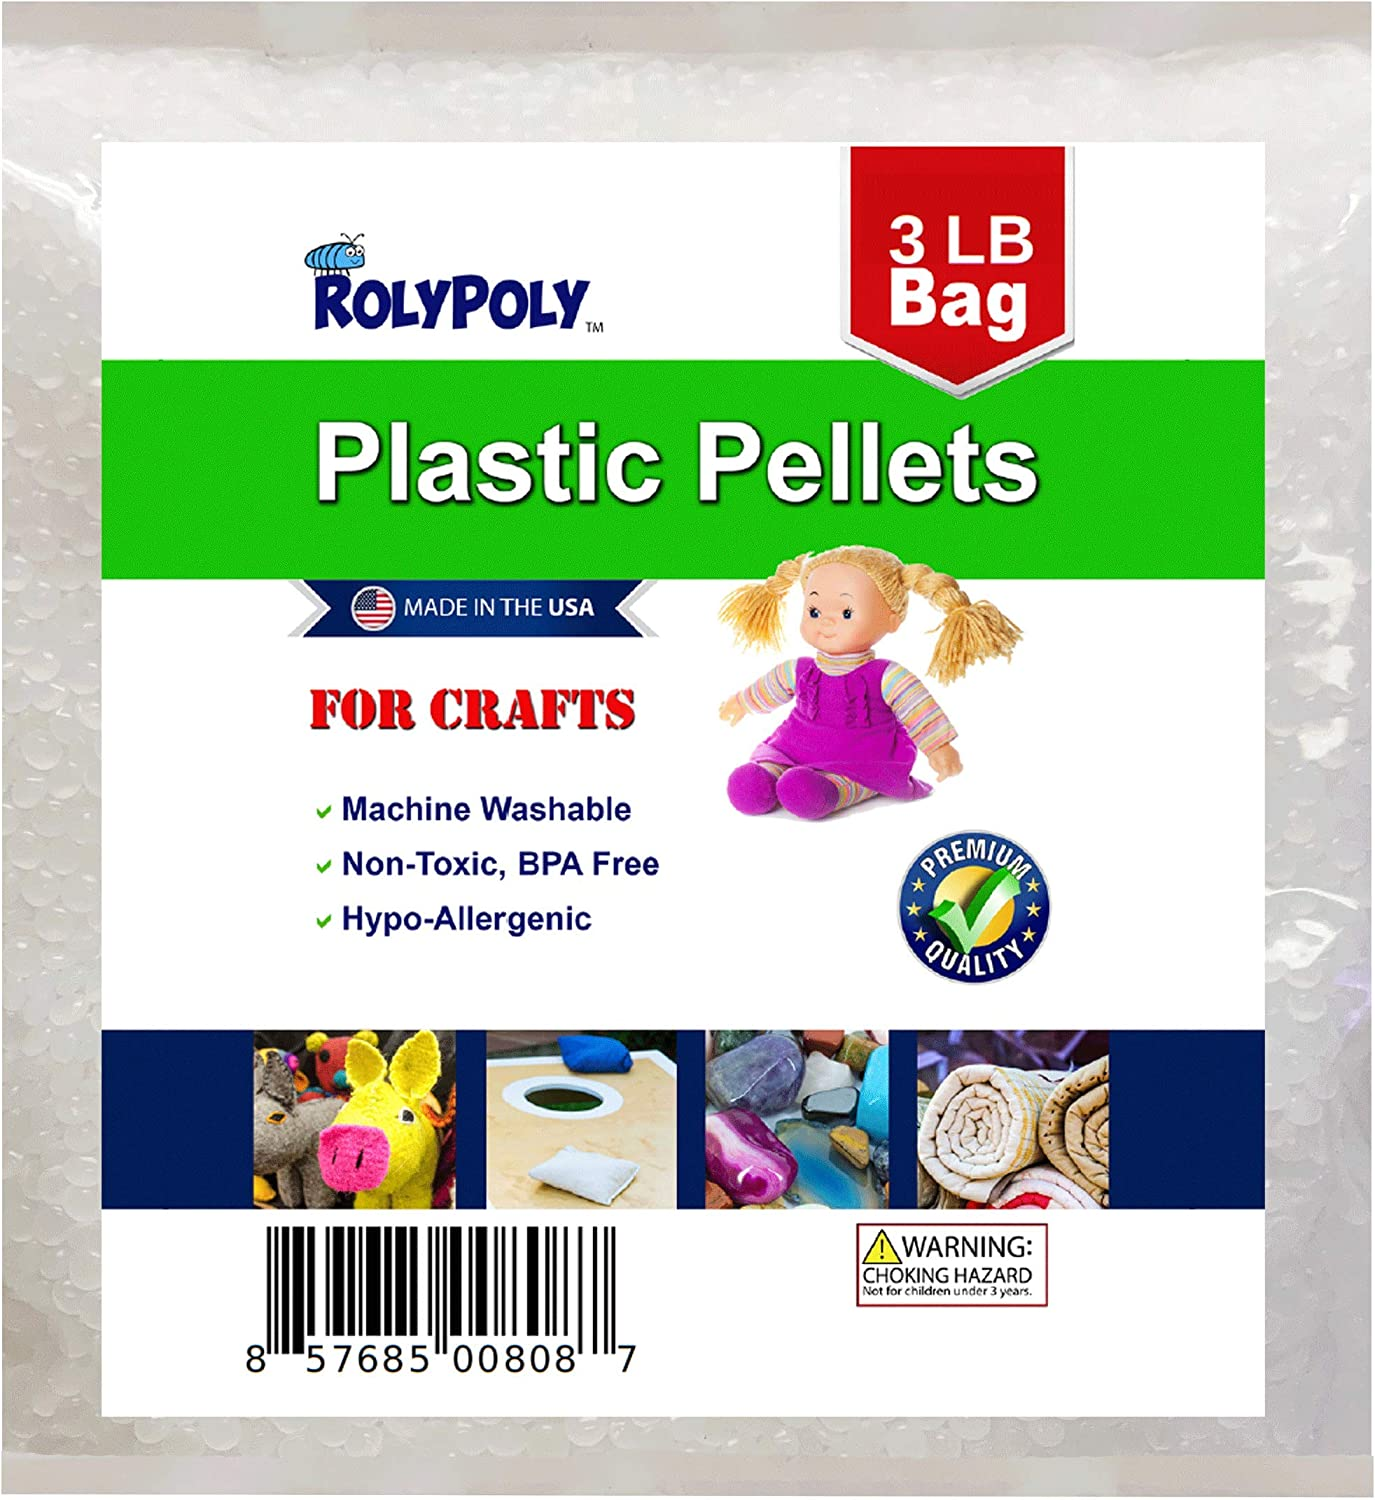 Rock Tumblers Weighted Vests Slushie or Crunchy Slime Lap Pads iSpy Bags Filler or Stuffing Beads for Weighted Blankets Sensory Development 3 LBS Poly Plastic Pellets Draft Stoppers